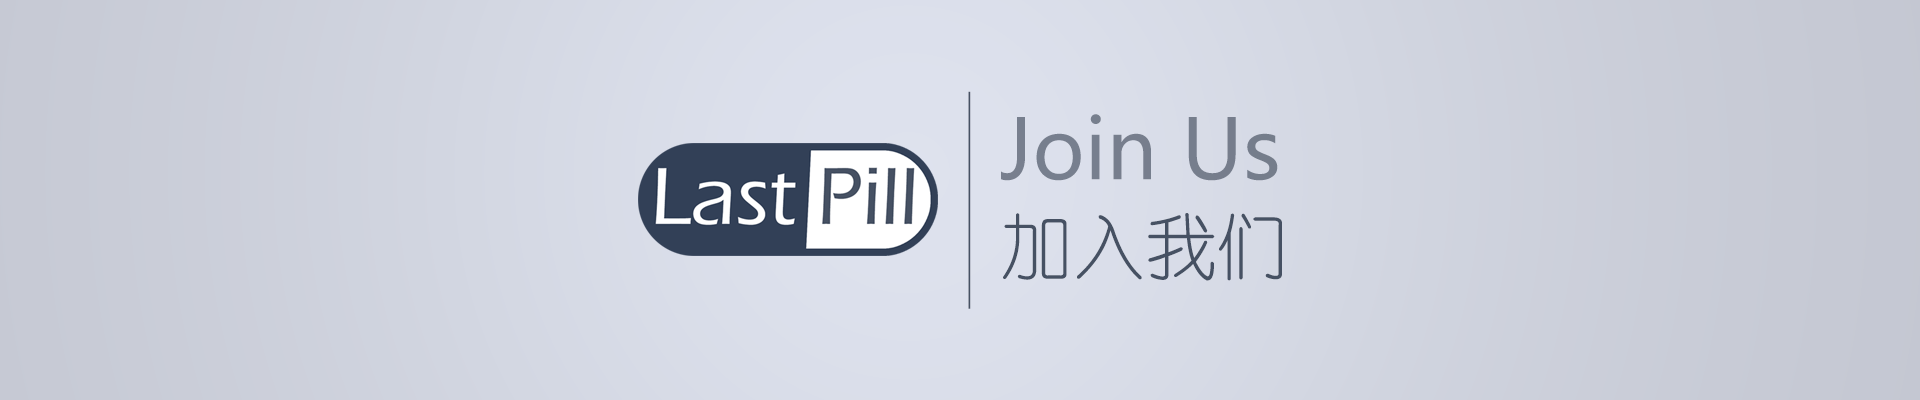 join-index.png